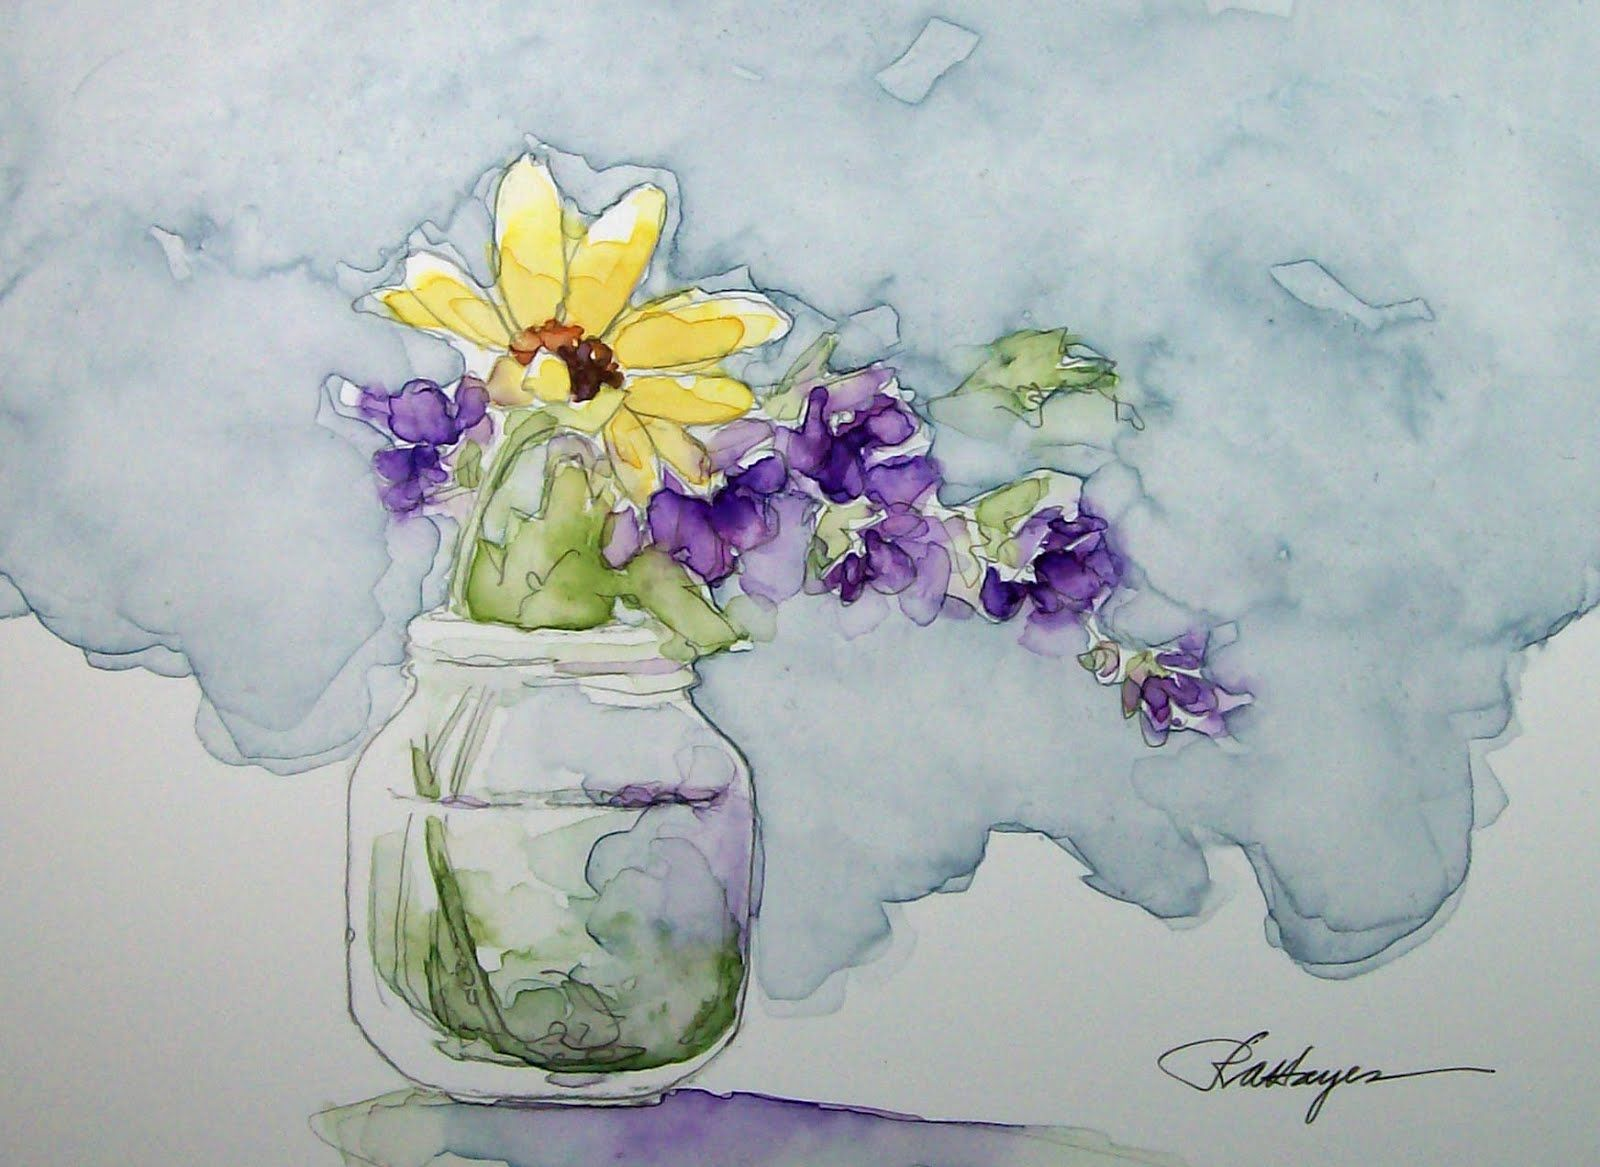 Watercolor painting watercolor flowers flower art flower - Image Detail For Daily Watercolors Floral Watercolor Painting